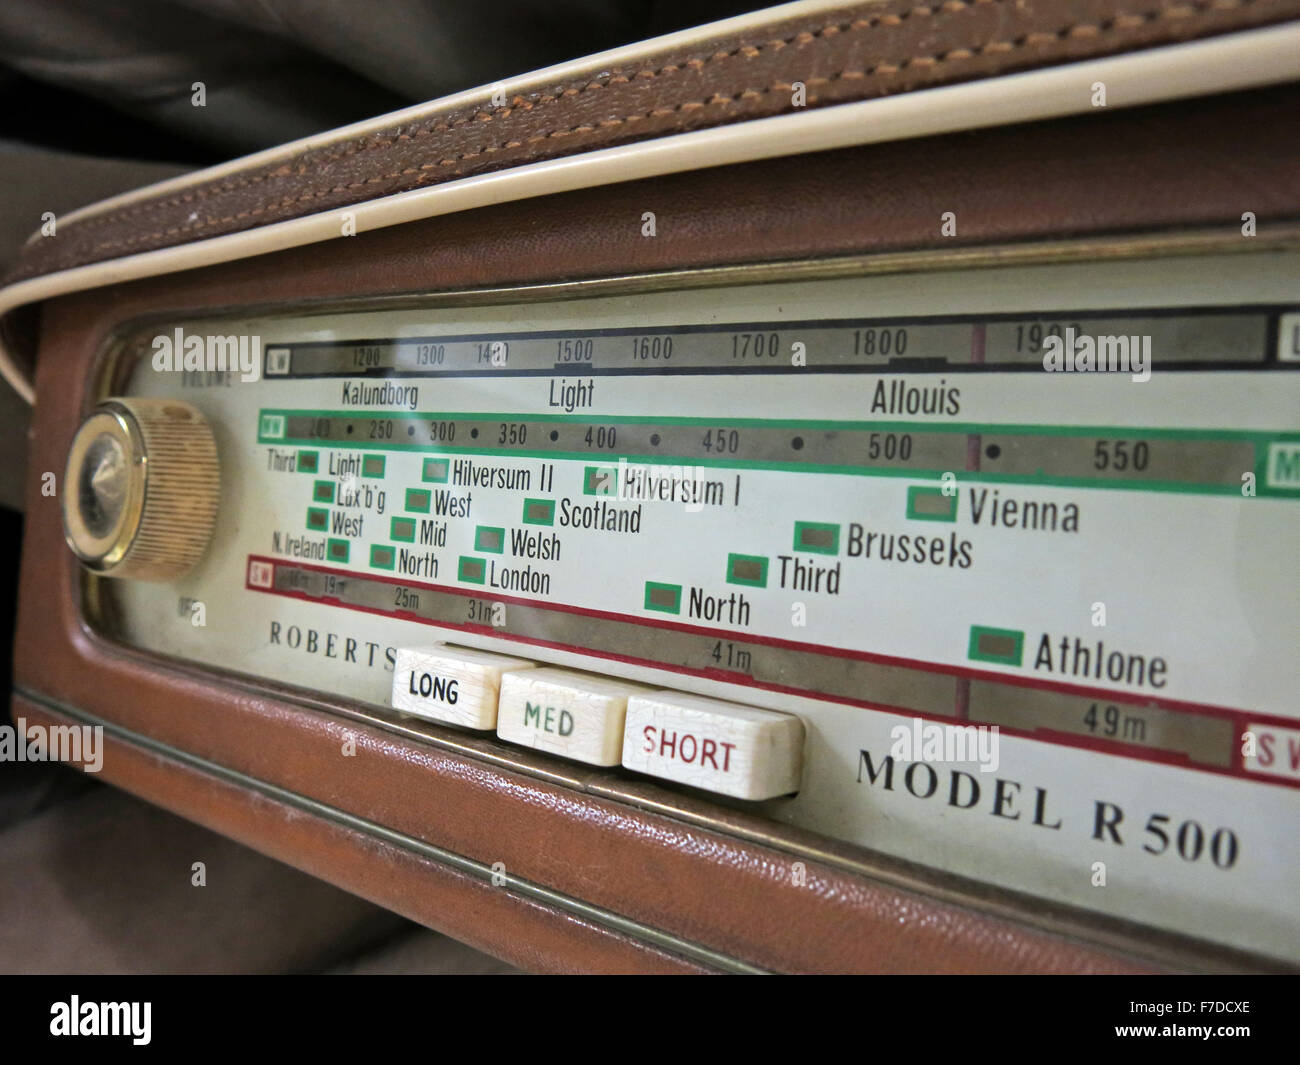 original,wireless,receiver,tech,technology,short,medium,long,wave,scale,old,analogue,transistor,valve,solid,state,solidstate,dial,welsh,London,Hilversum,button,buttons,colored,colour,coloured,tune,tuning,tuner,frequency,band,retro,style,icon,wire,less,brown,cream,creme,ivory,third,Brussels,MED,radio,GoTonySmith,radio,dial,model,R500,long,knob,Athlone,Vienna,Third,North,Allouis,49m,41m,metres,metre,Buy Pictures of,Buy Images Of,Model R500